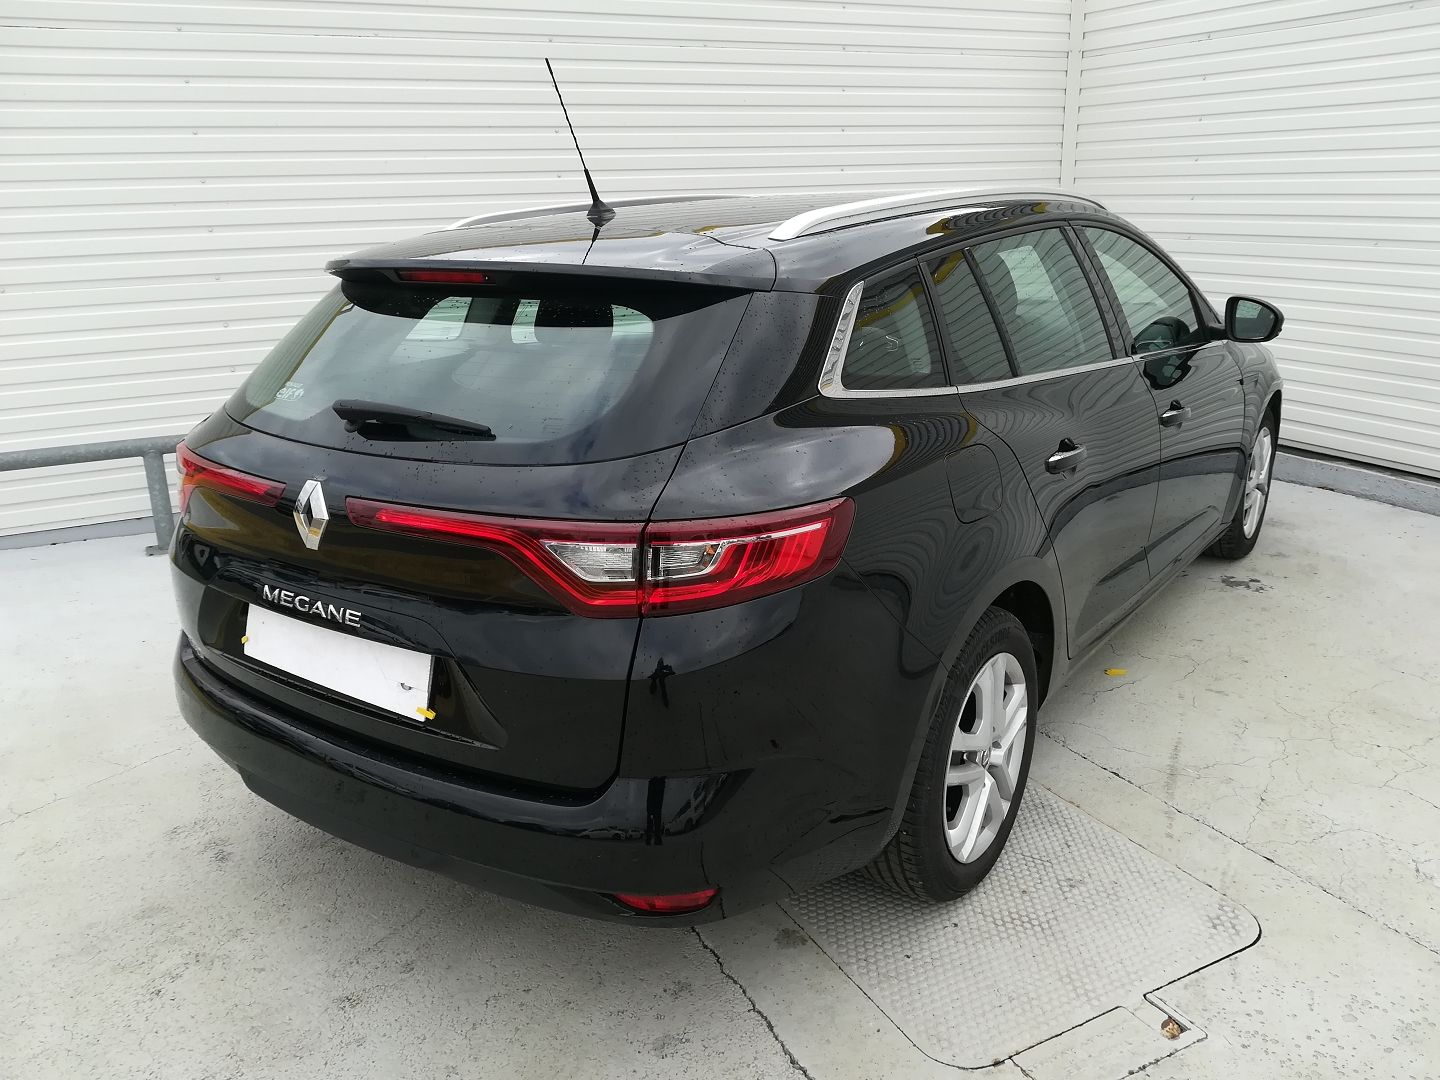 RENAULT MEGANE IV ESTATE 1.5 DCI 110CH ENERGY BUSINESS